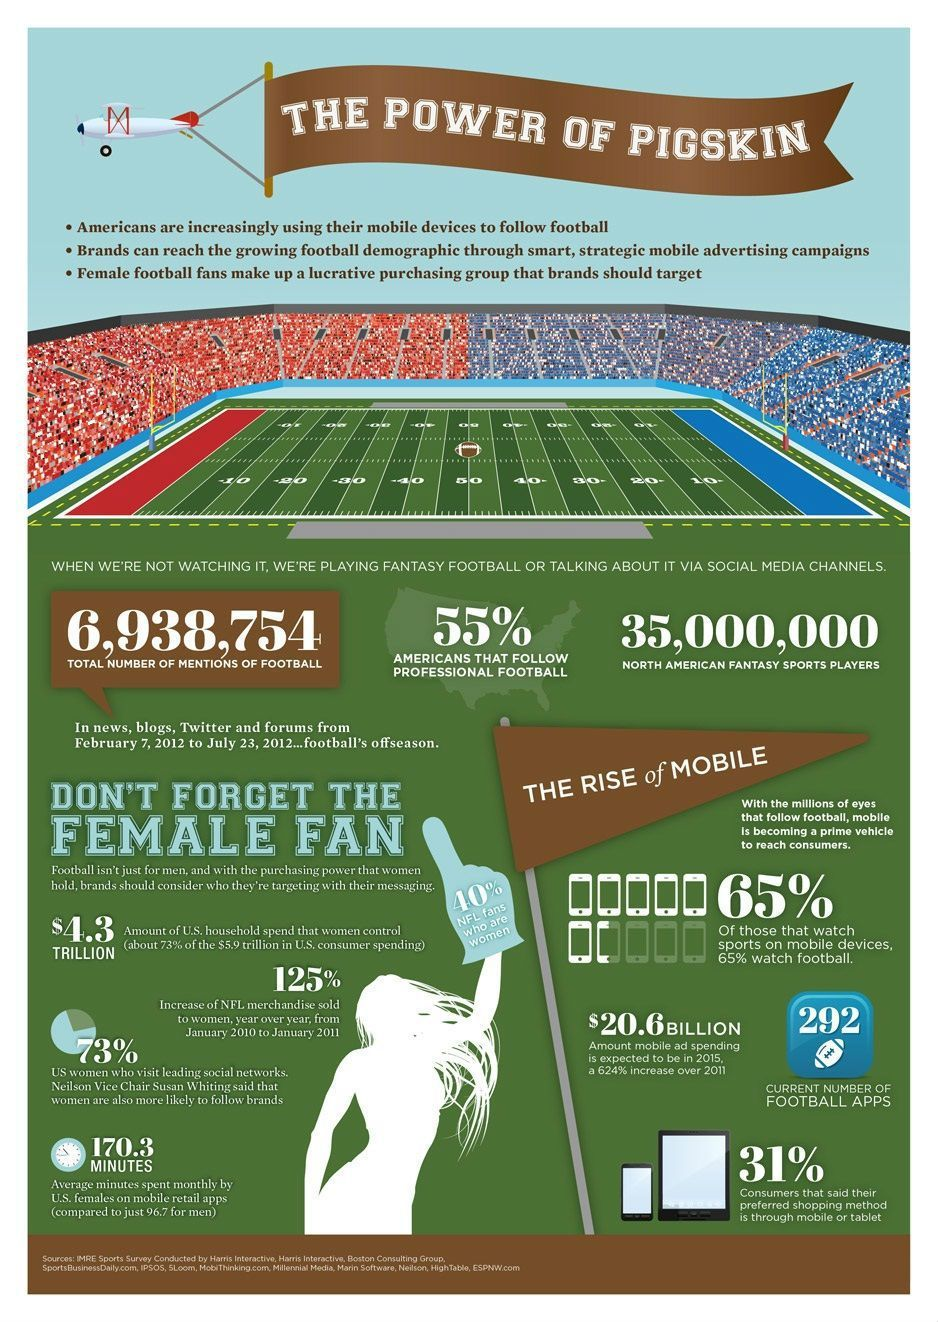 Pro Football Is MostFollowed Sport on Mobile Devices